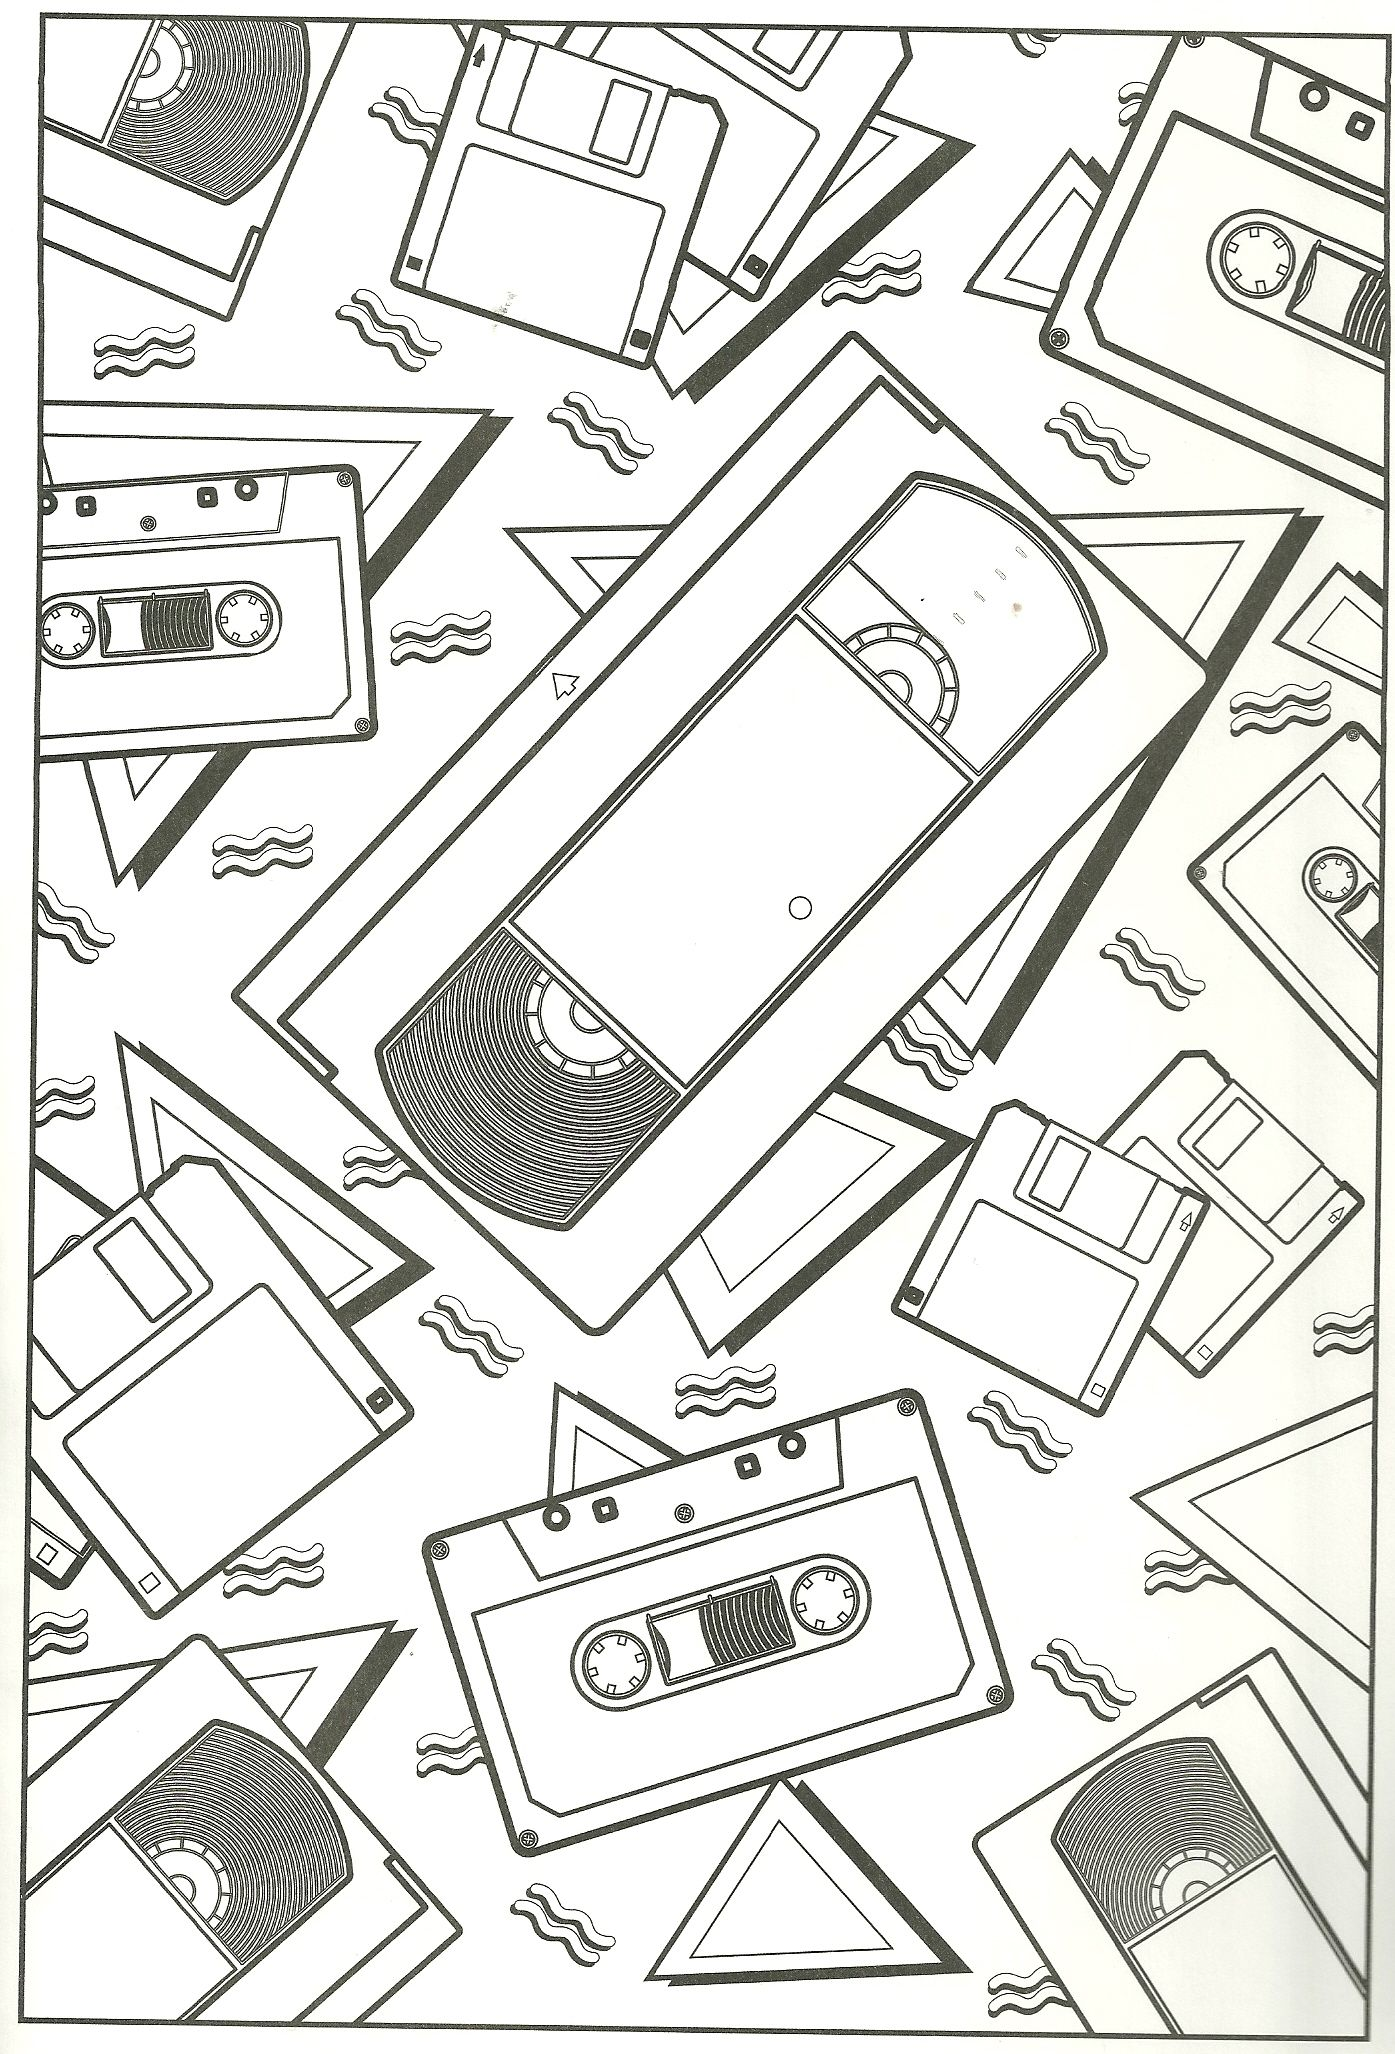 Floppy Disc Caasette And Vhs Tape Coloring Page